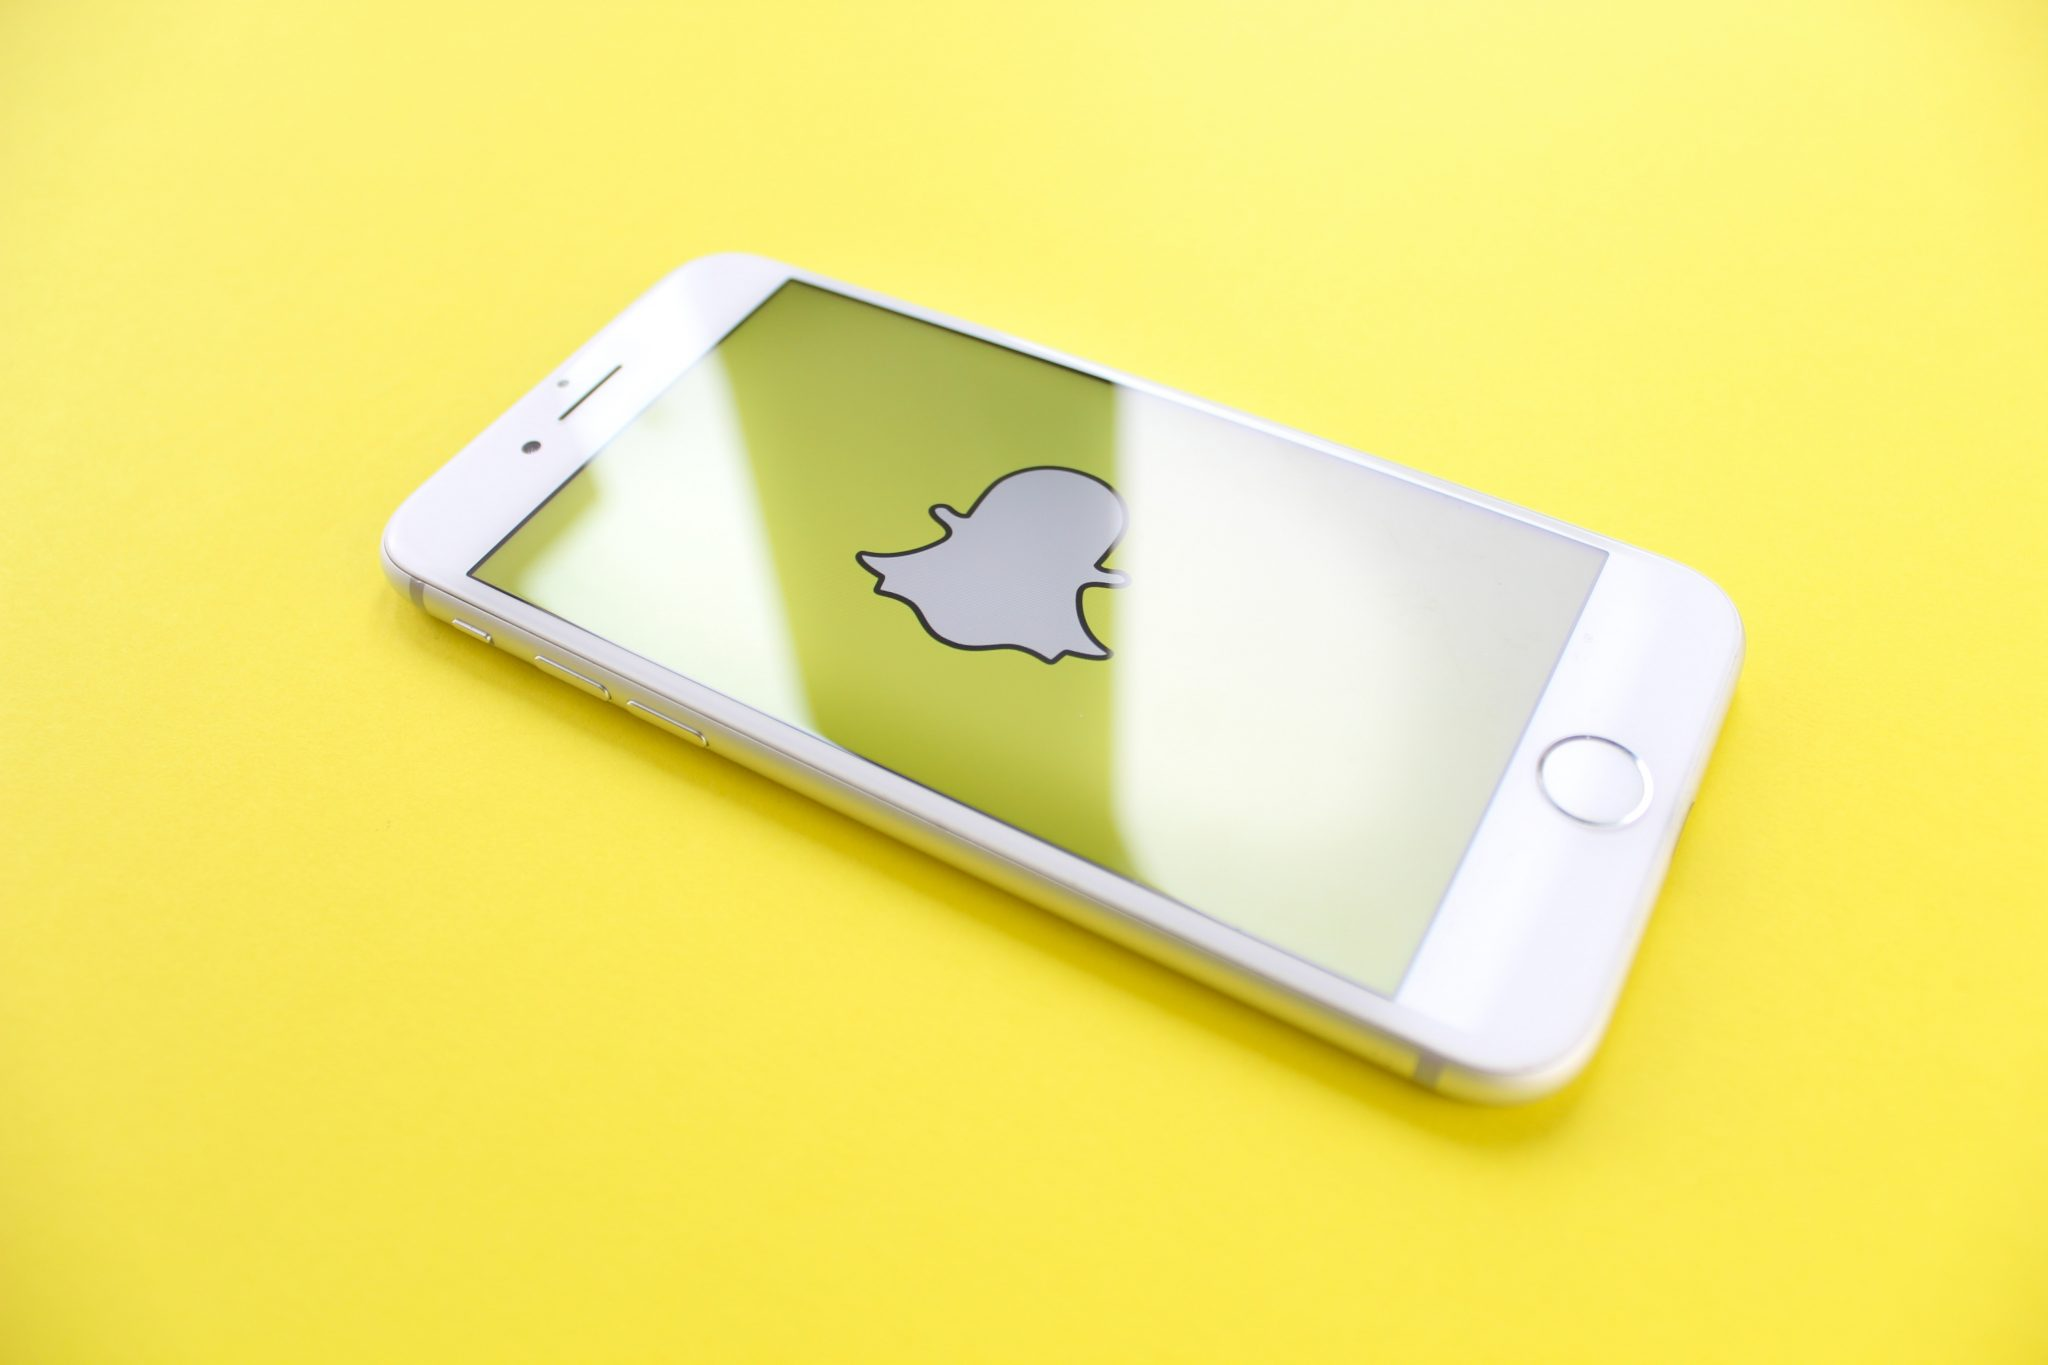 logo de l'application Snapchat dans un iPhone